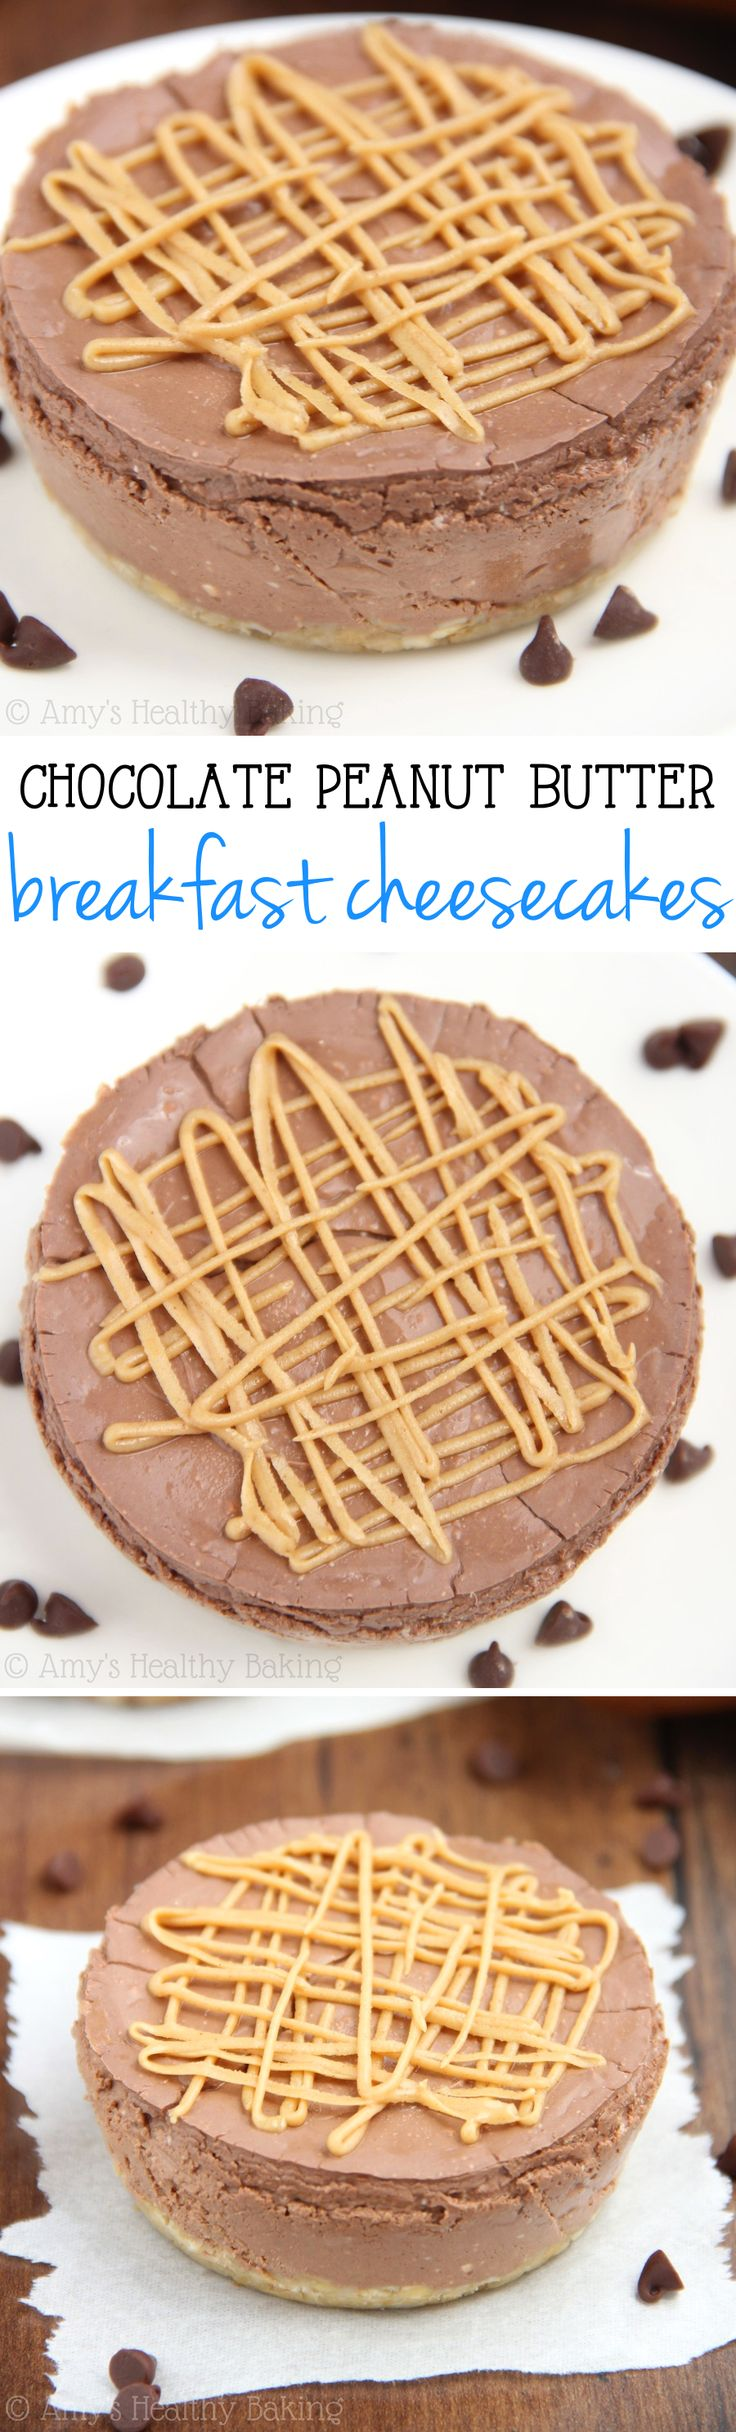 Skinny Chocolate & Peanut Butter Breakfast Cheesecakes -- an easy recipe packed with 15g of protein & NO refined sugar!